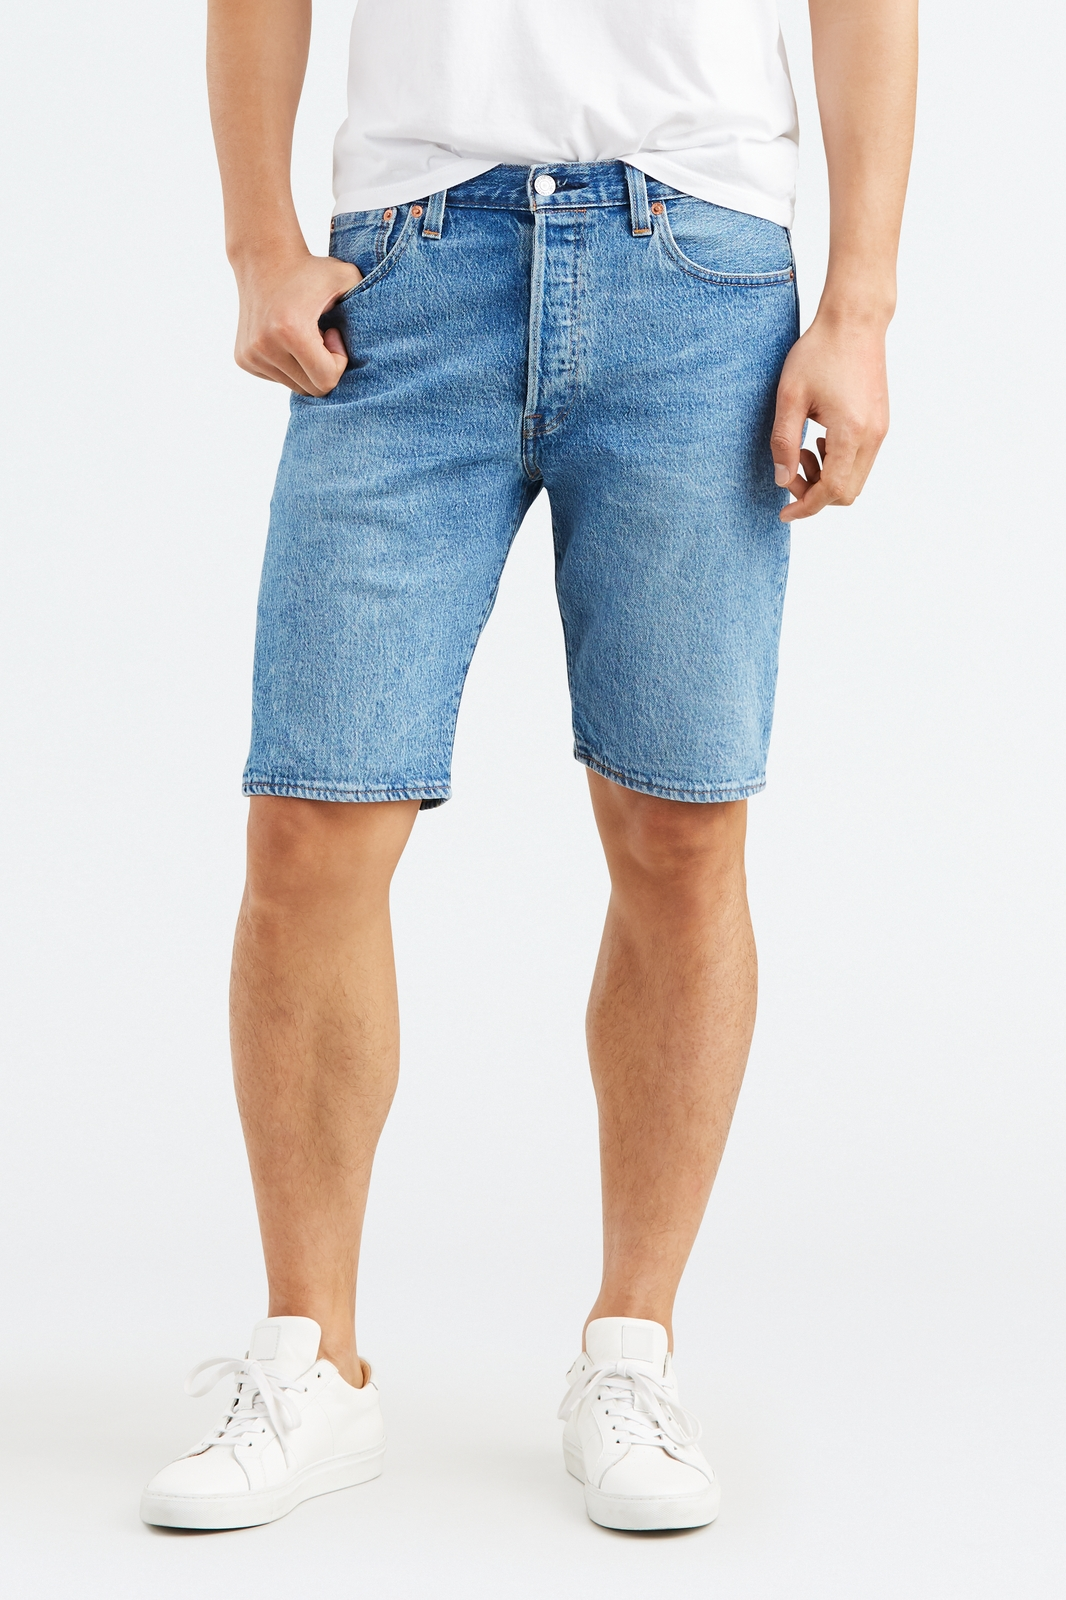 Шорты Levi's Shorts - Denim trendy embroideried broken hole macrame denim shorts for women